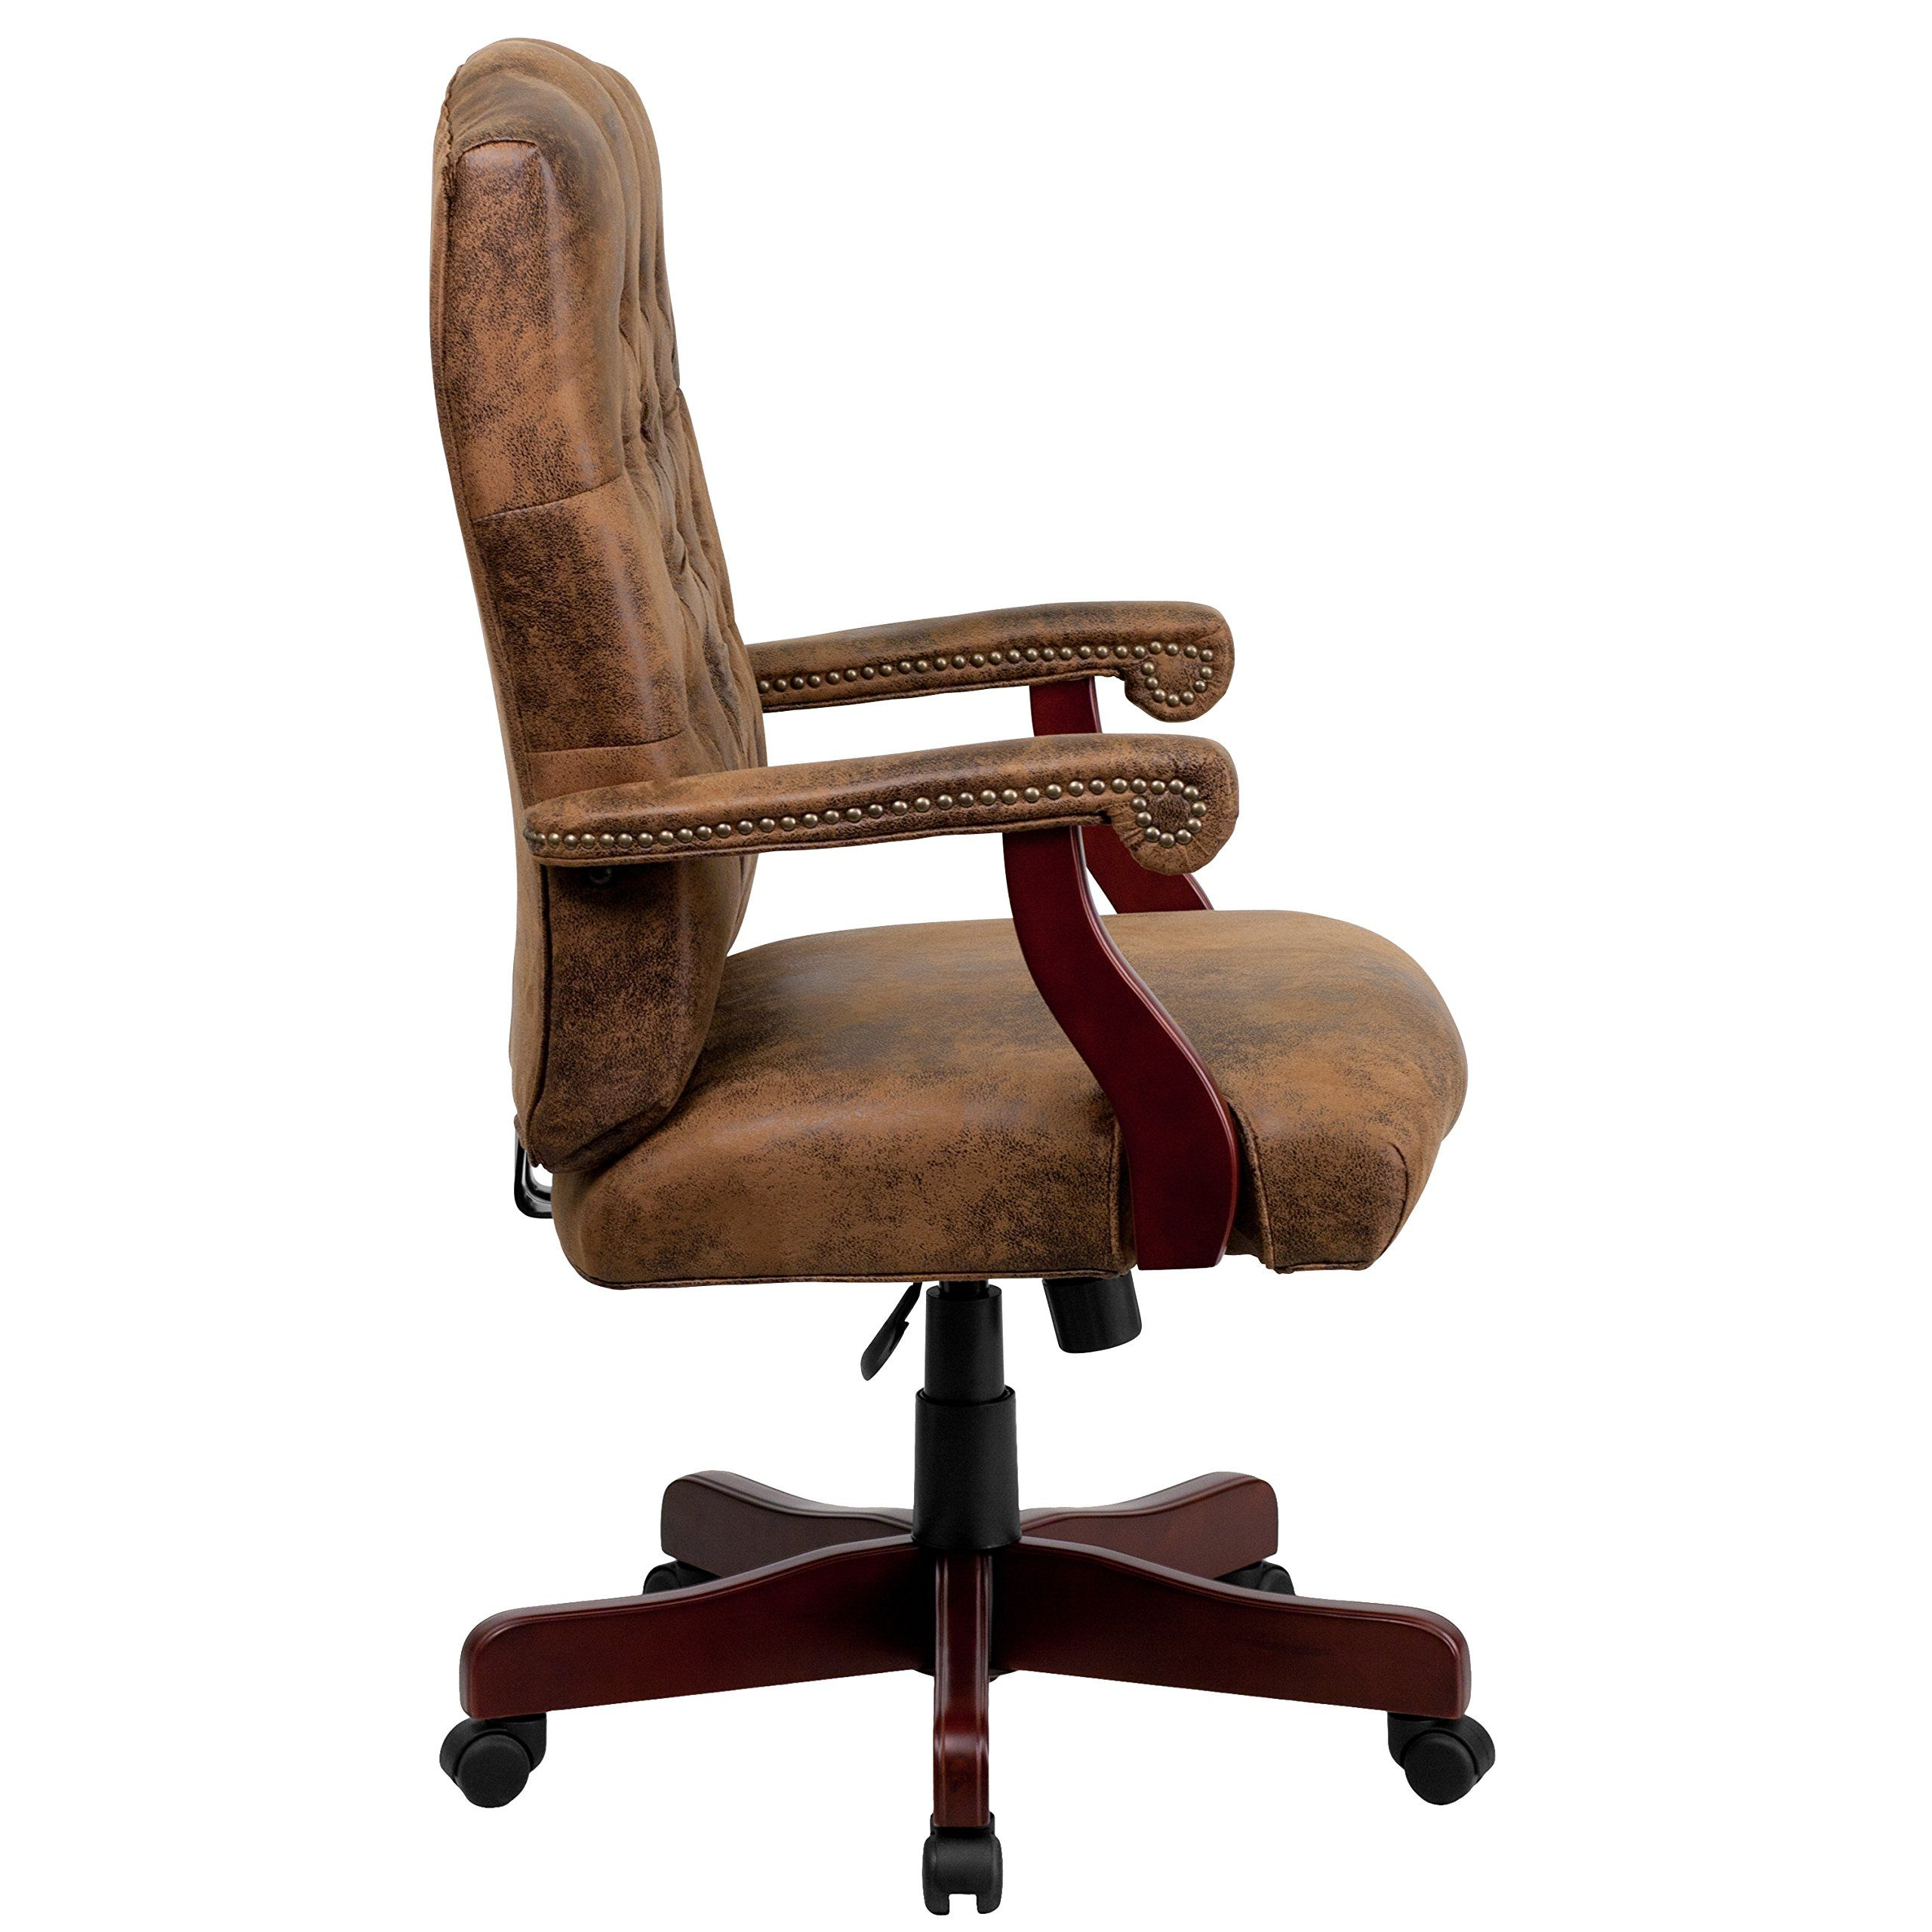 A Line Furniture Ultra Rustic Suede Button Tufted Mahogany Wood Adjustable Executive Swivel Office Chair With Images Office Chair Upholstered Office Chair Flash Furniture